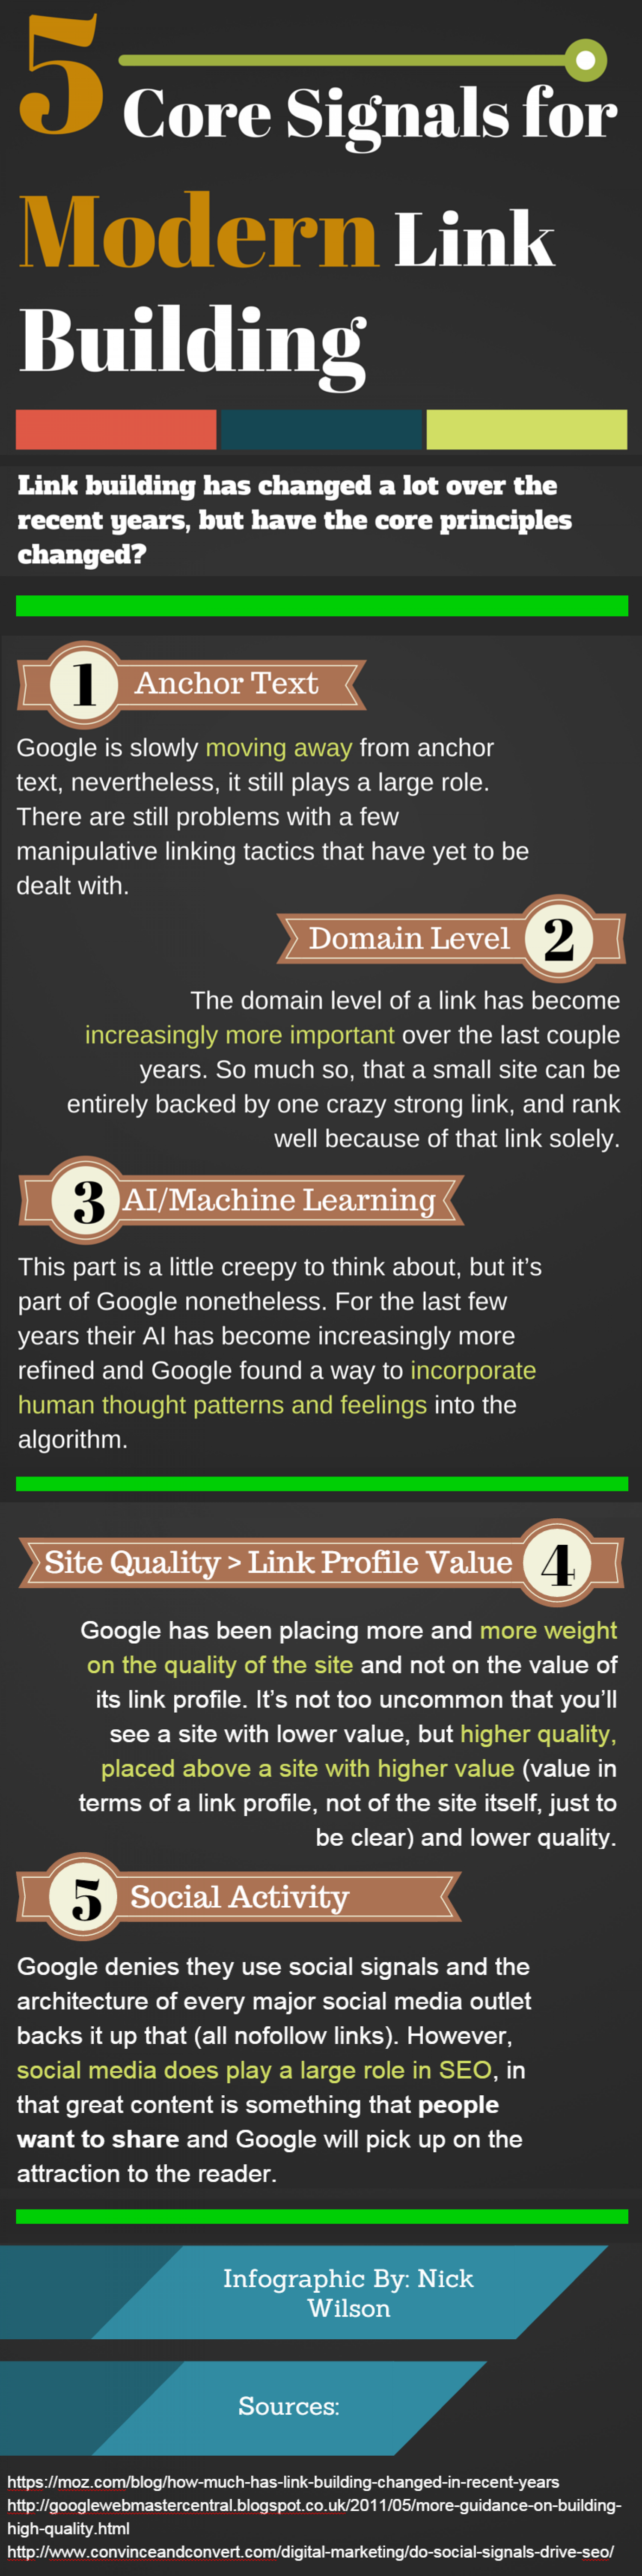 5 Core Signals Surrounding Modern Link Building Infographic